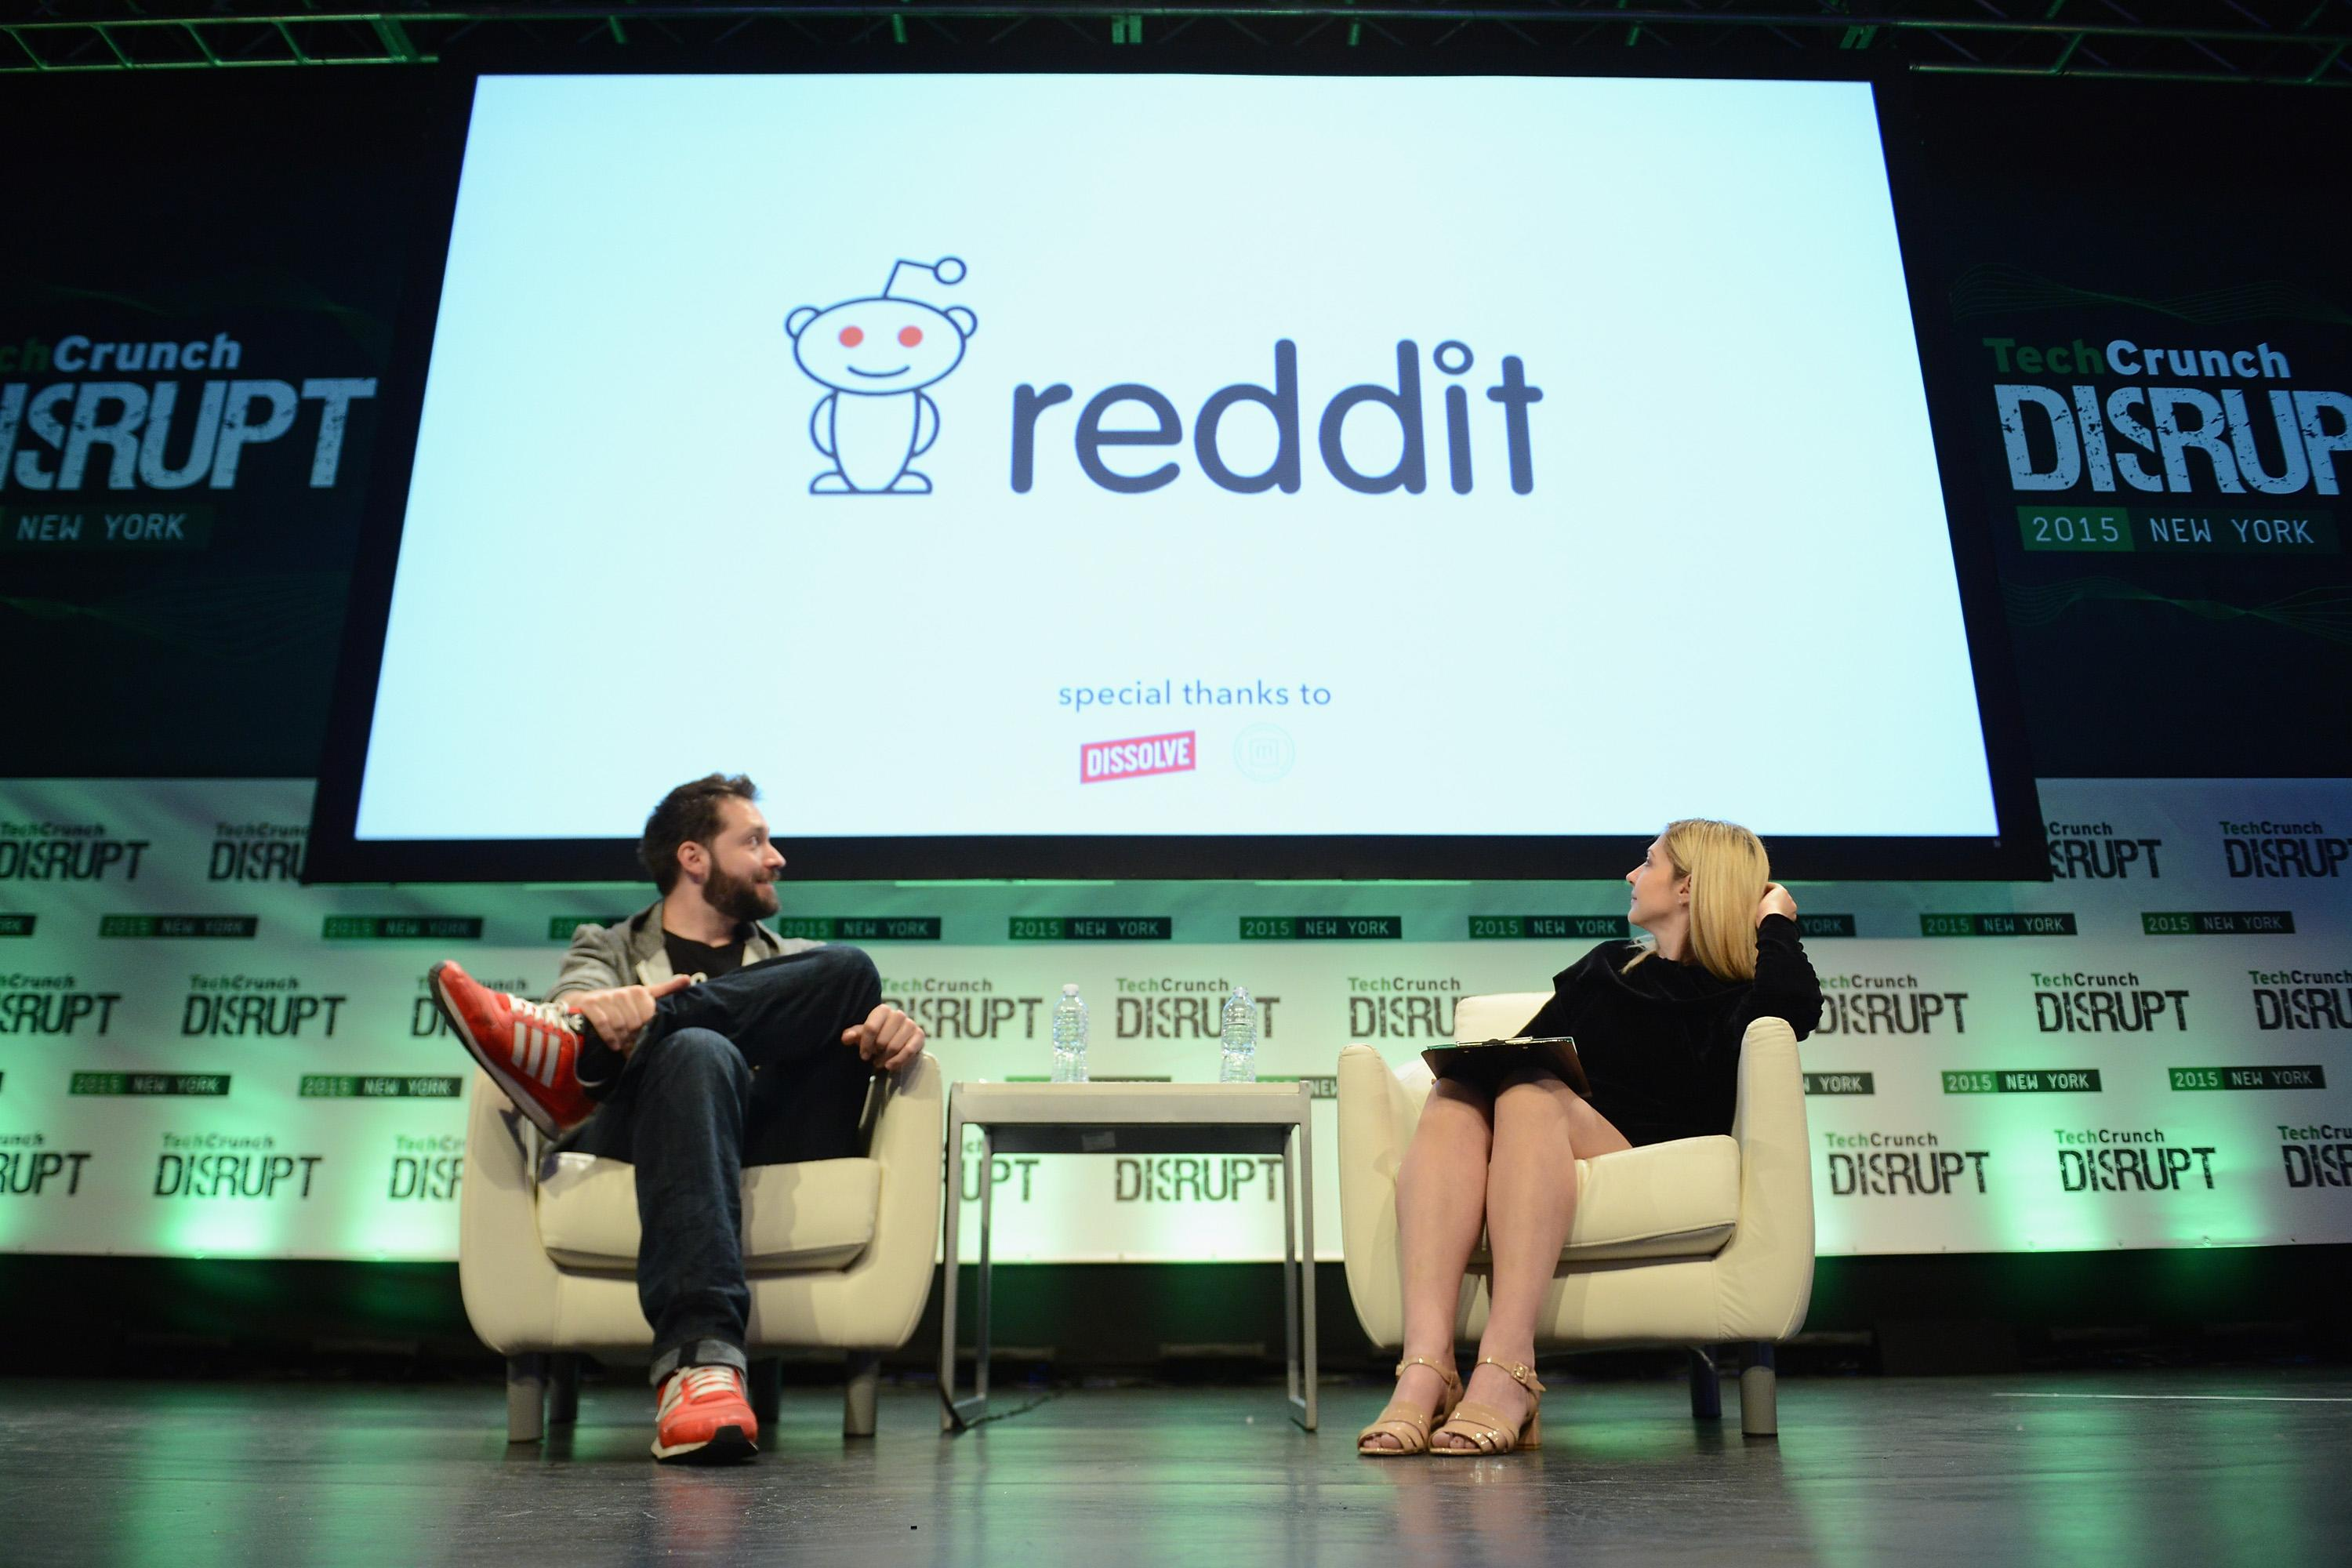 Reddit is launching its own advertiser-friendly news site — and there won't be any comments section